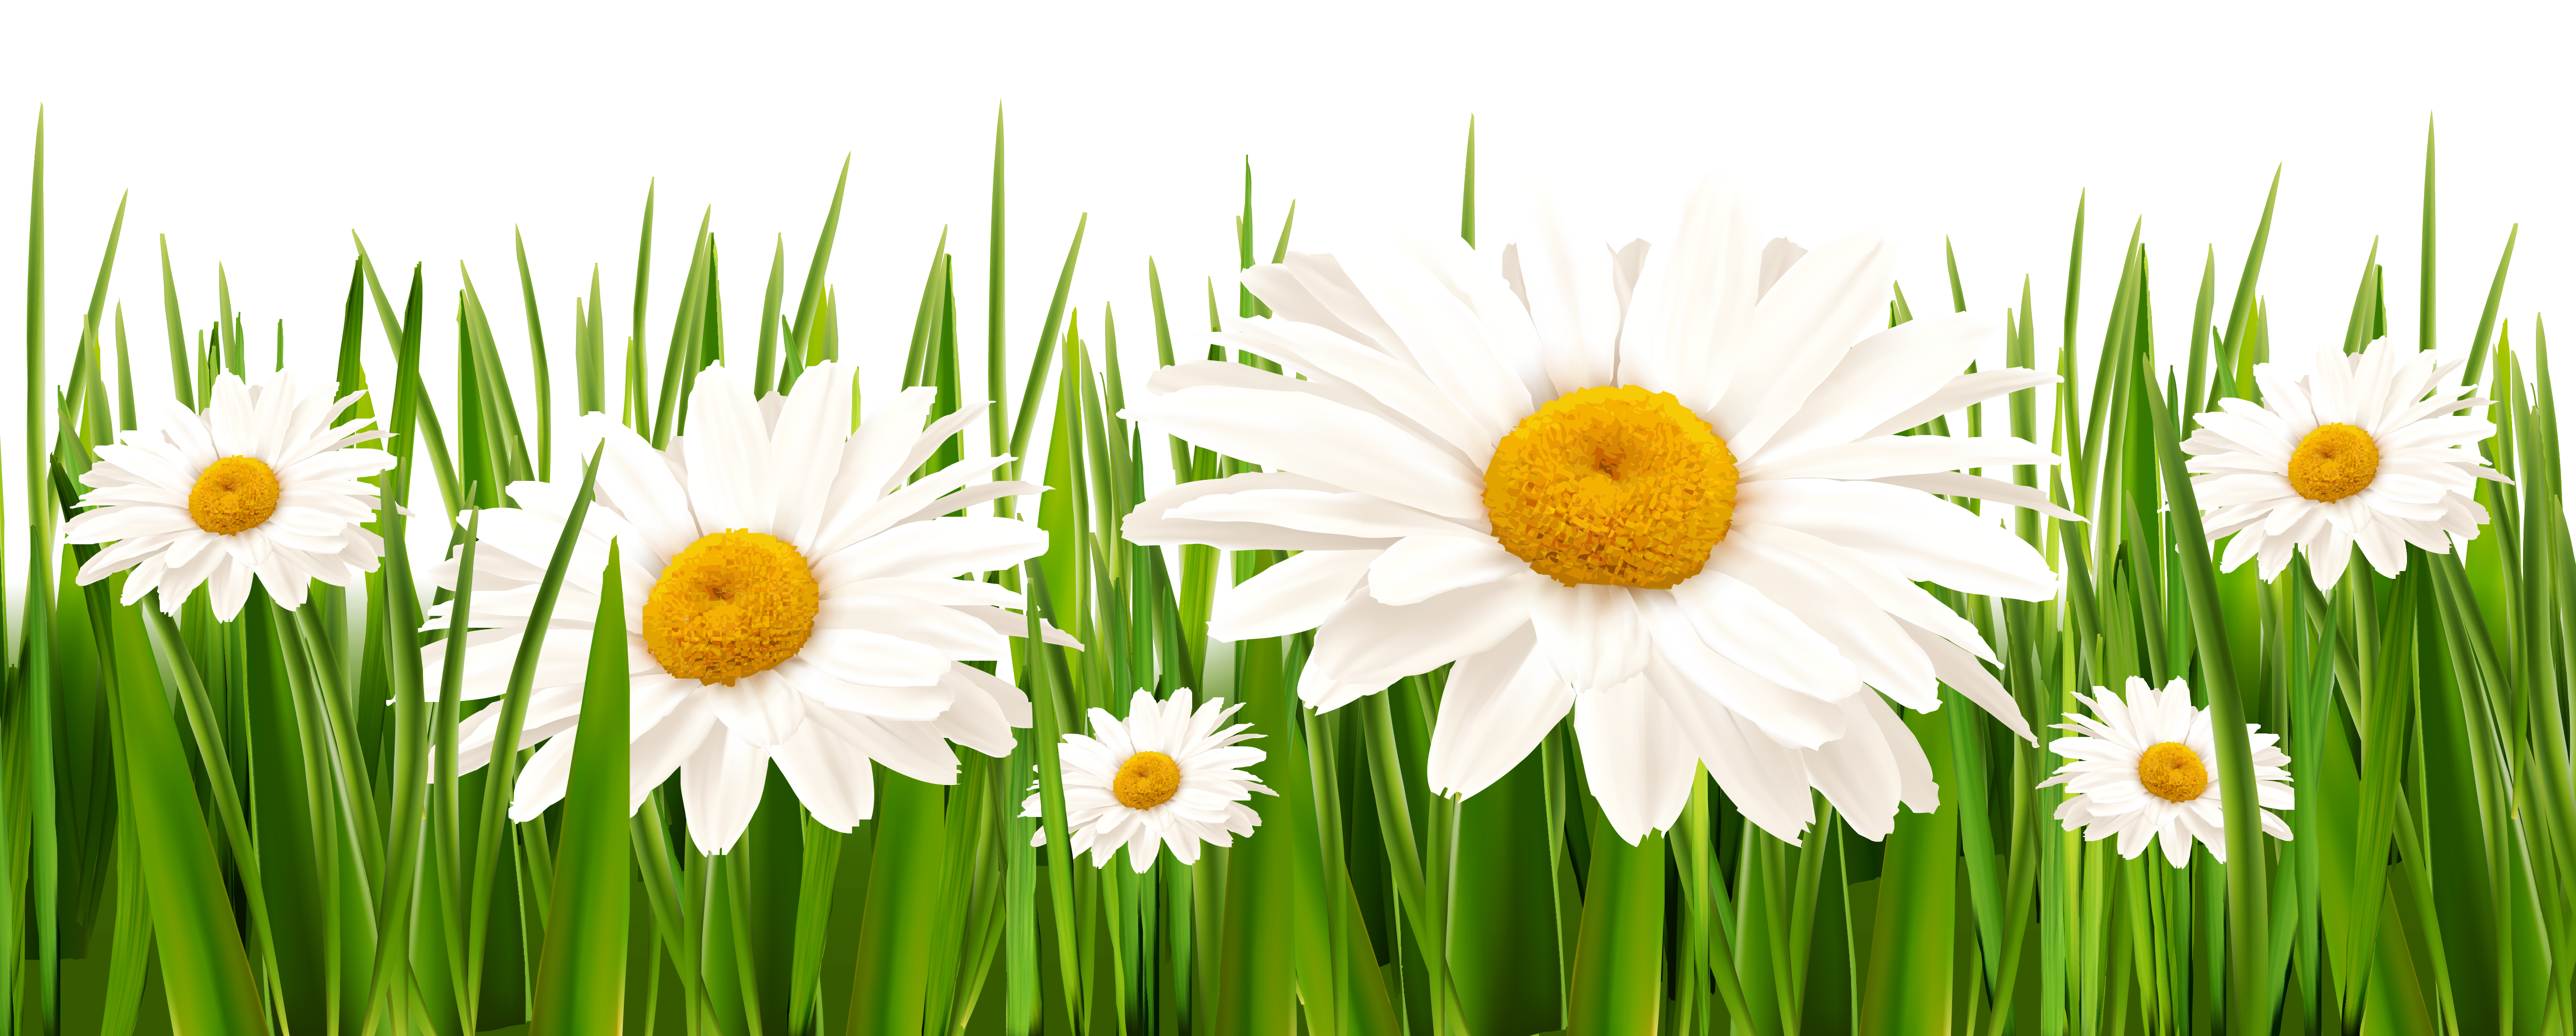 And white flowers png. Clipart grass plains